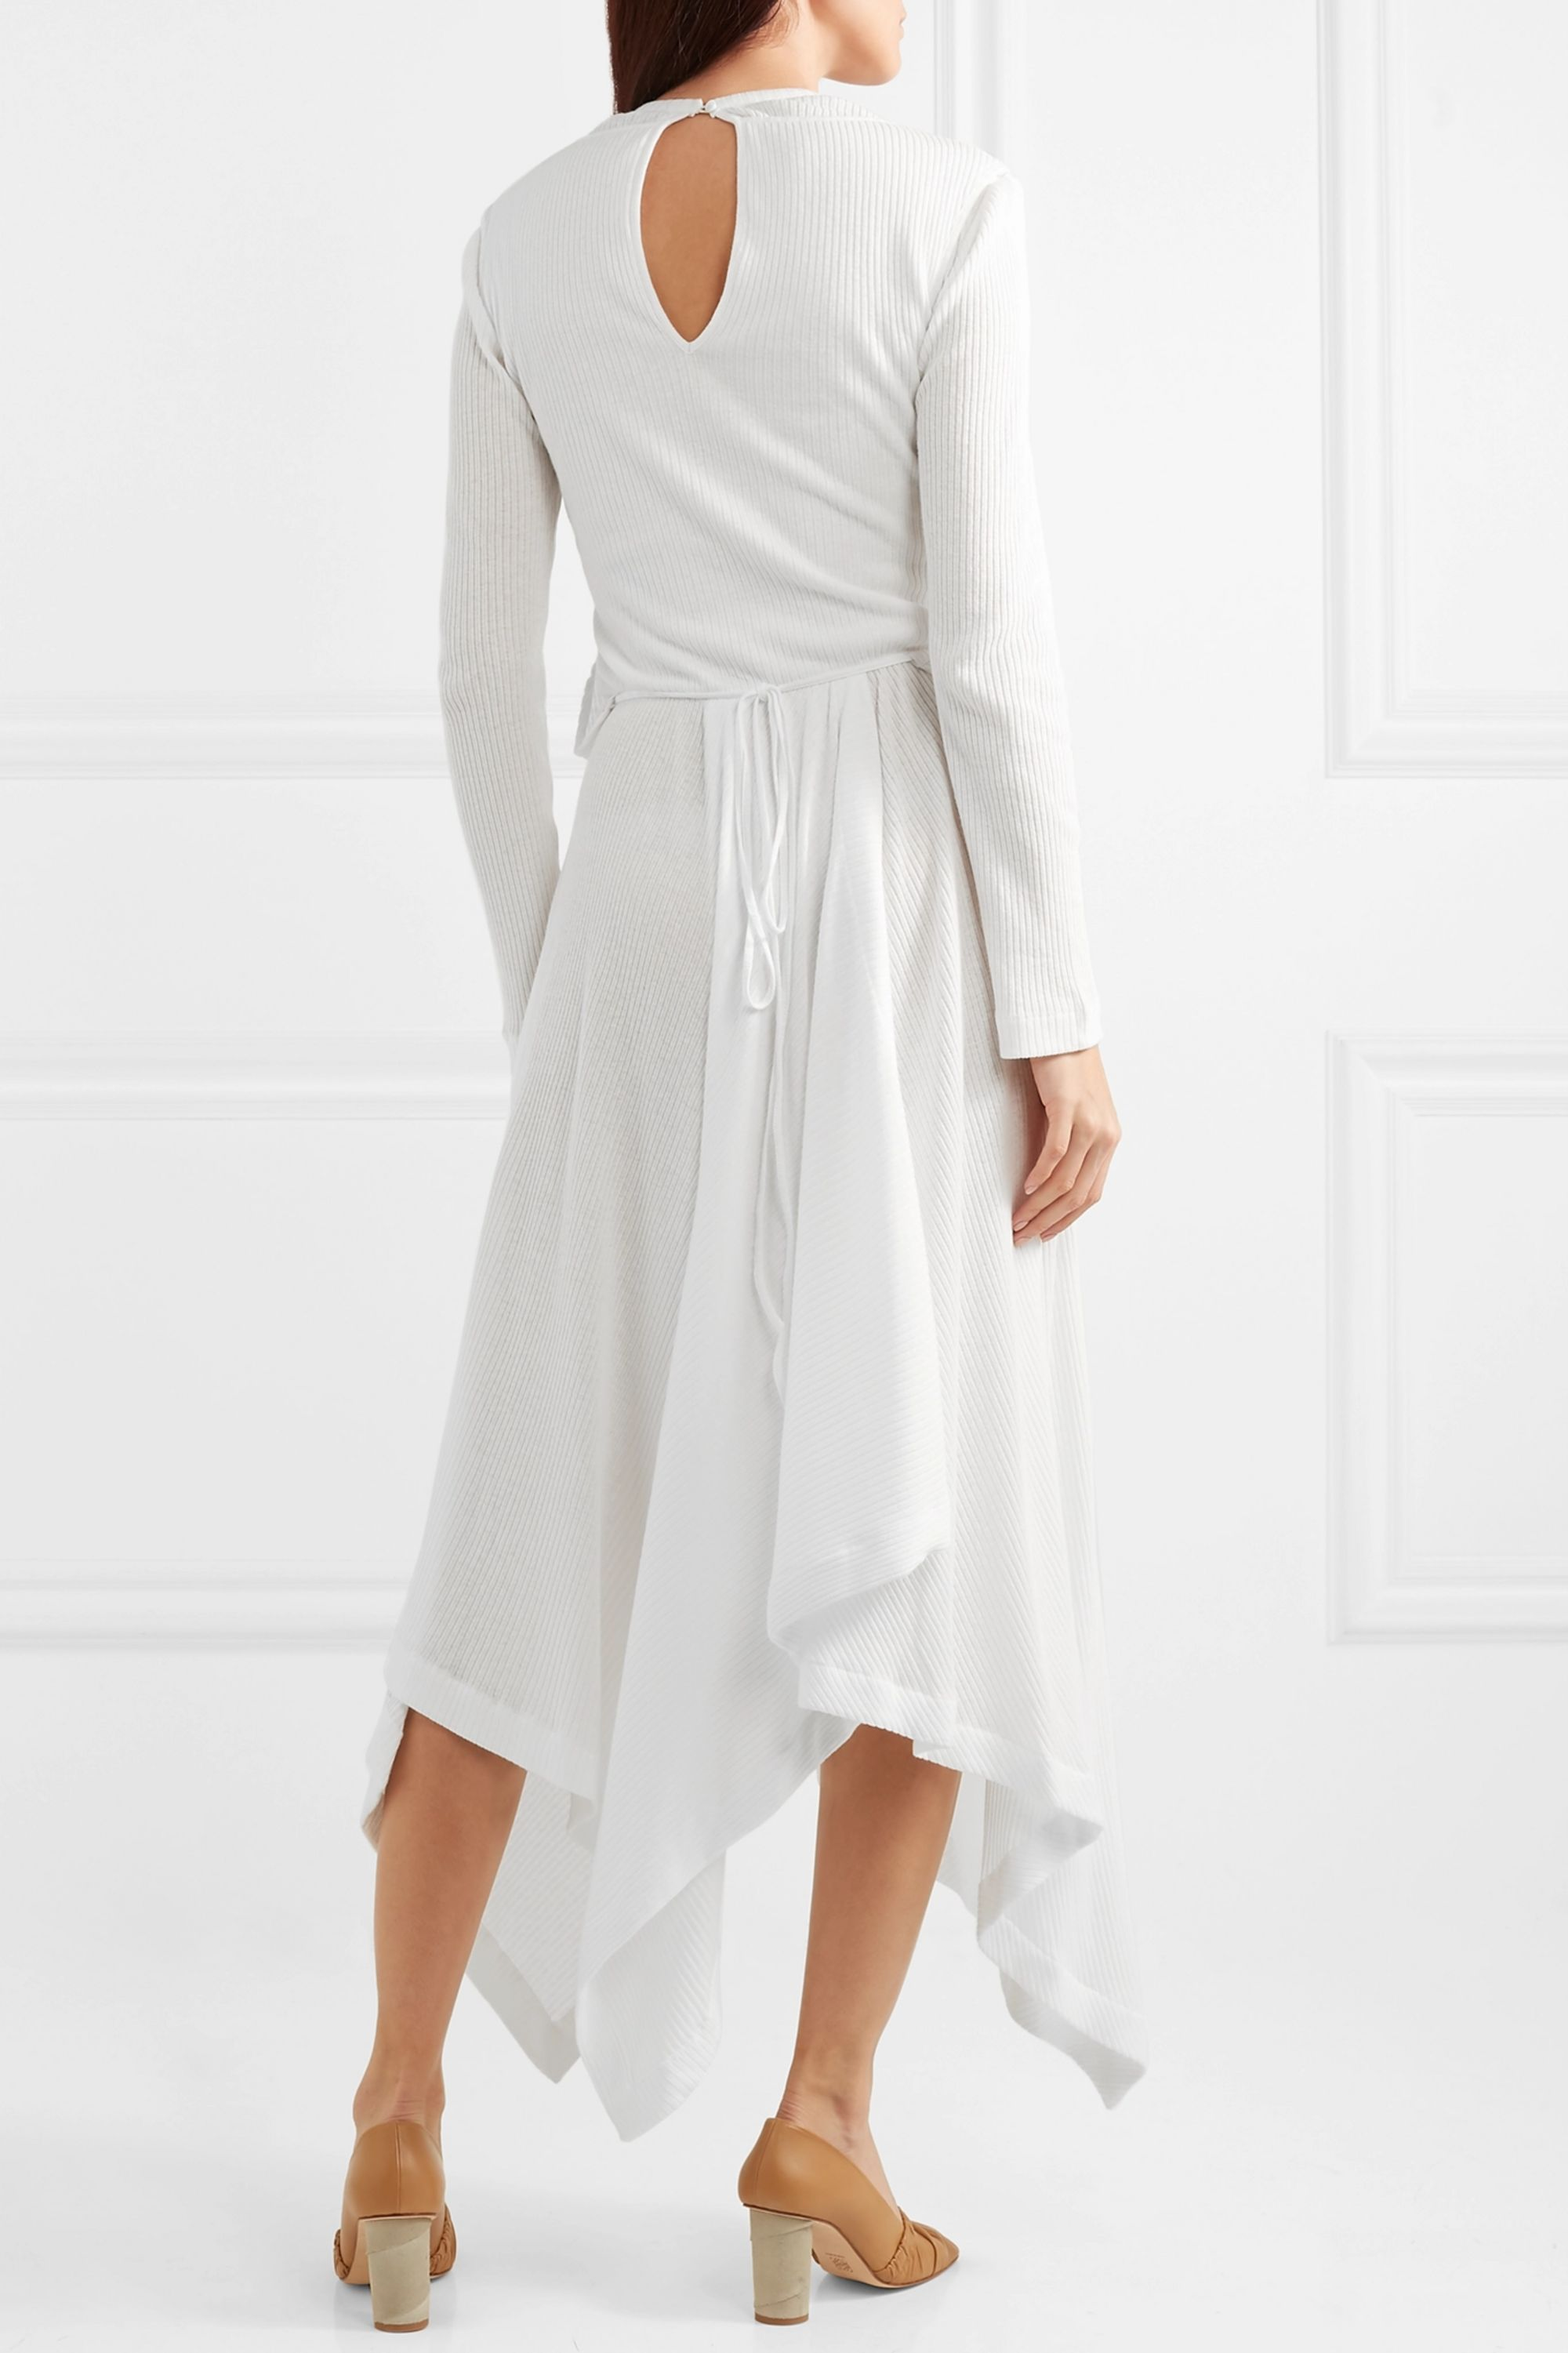 Loewe Asymmetric printed ribbed cotton-blend dress